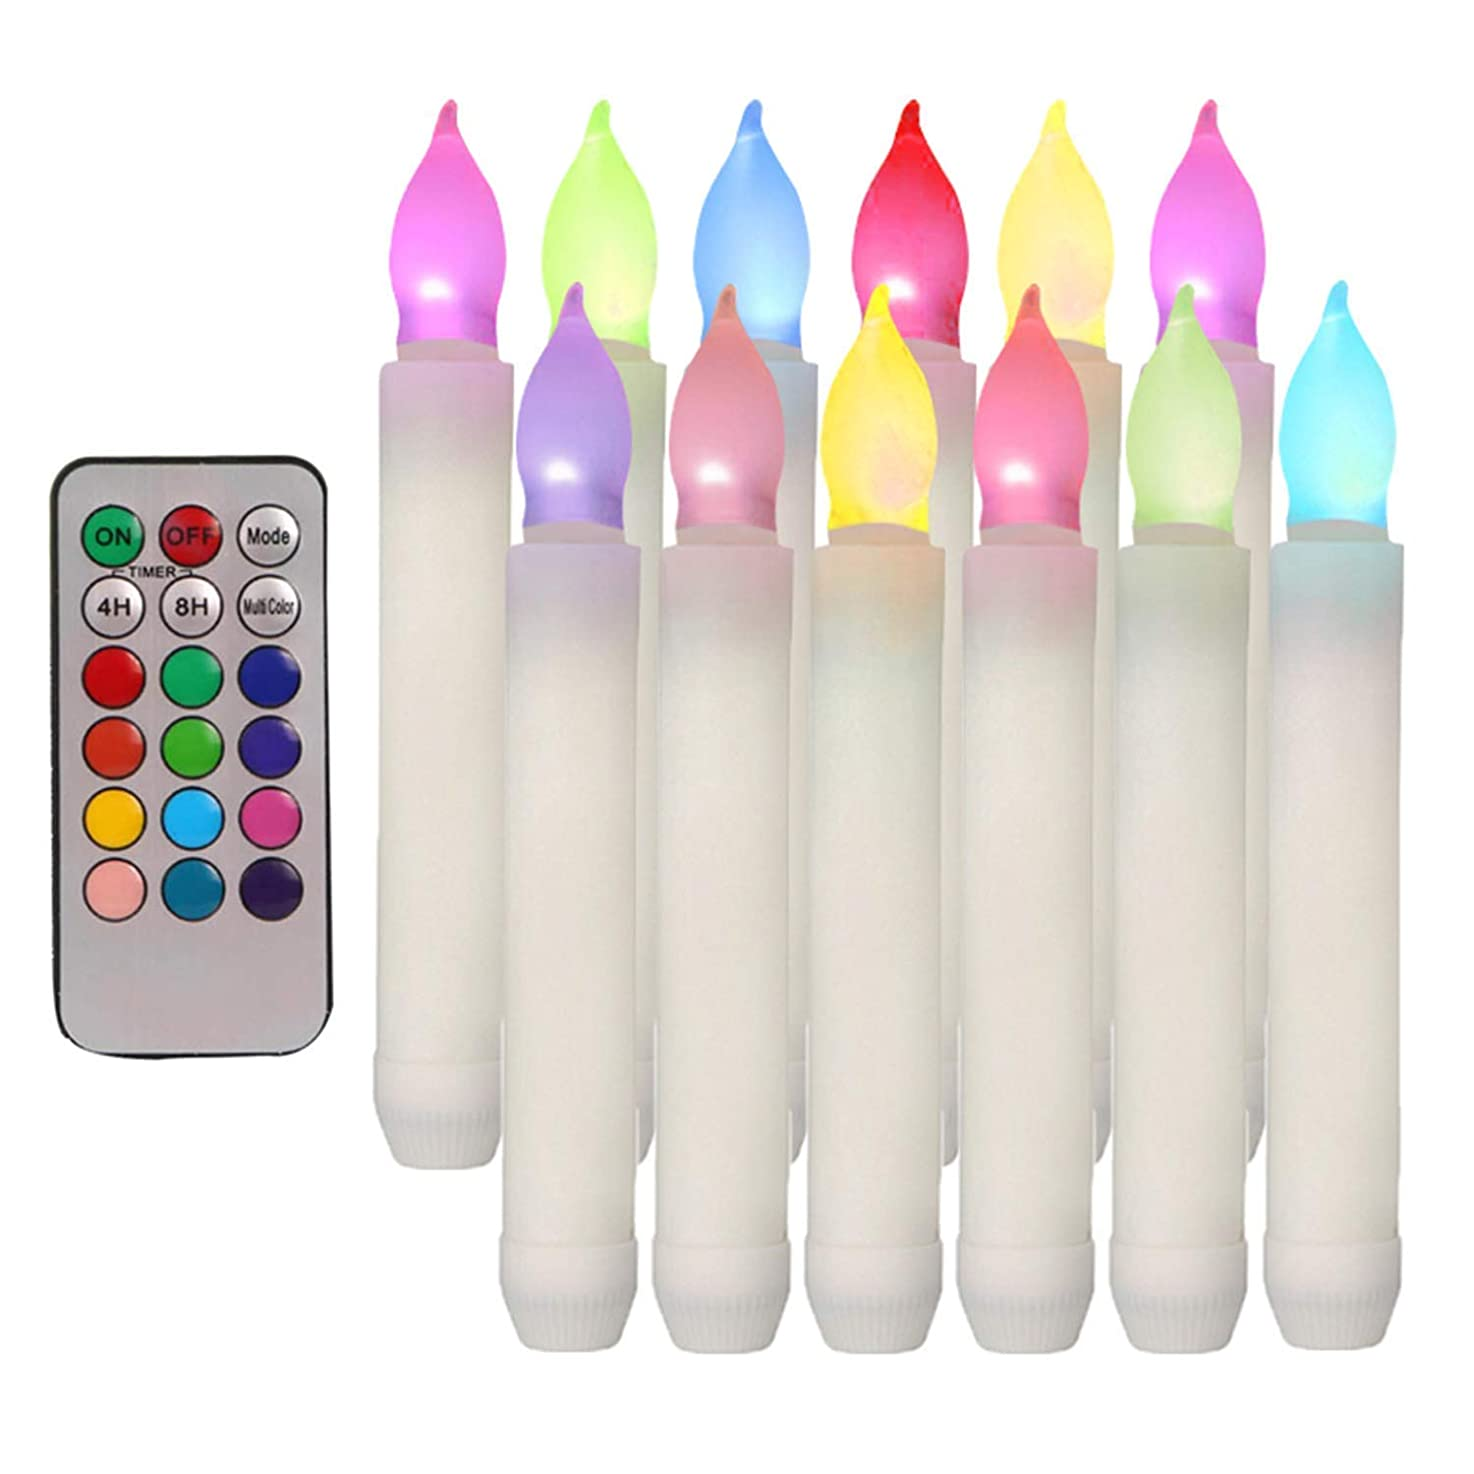 Houdlee Set of 12 Flameless Taper Candles with Remote Timer Flickering Color Changing Candles, LED Colored Taper Candles Battery Operated for Halloween, Wedding Party, Christmas,Candelabra